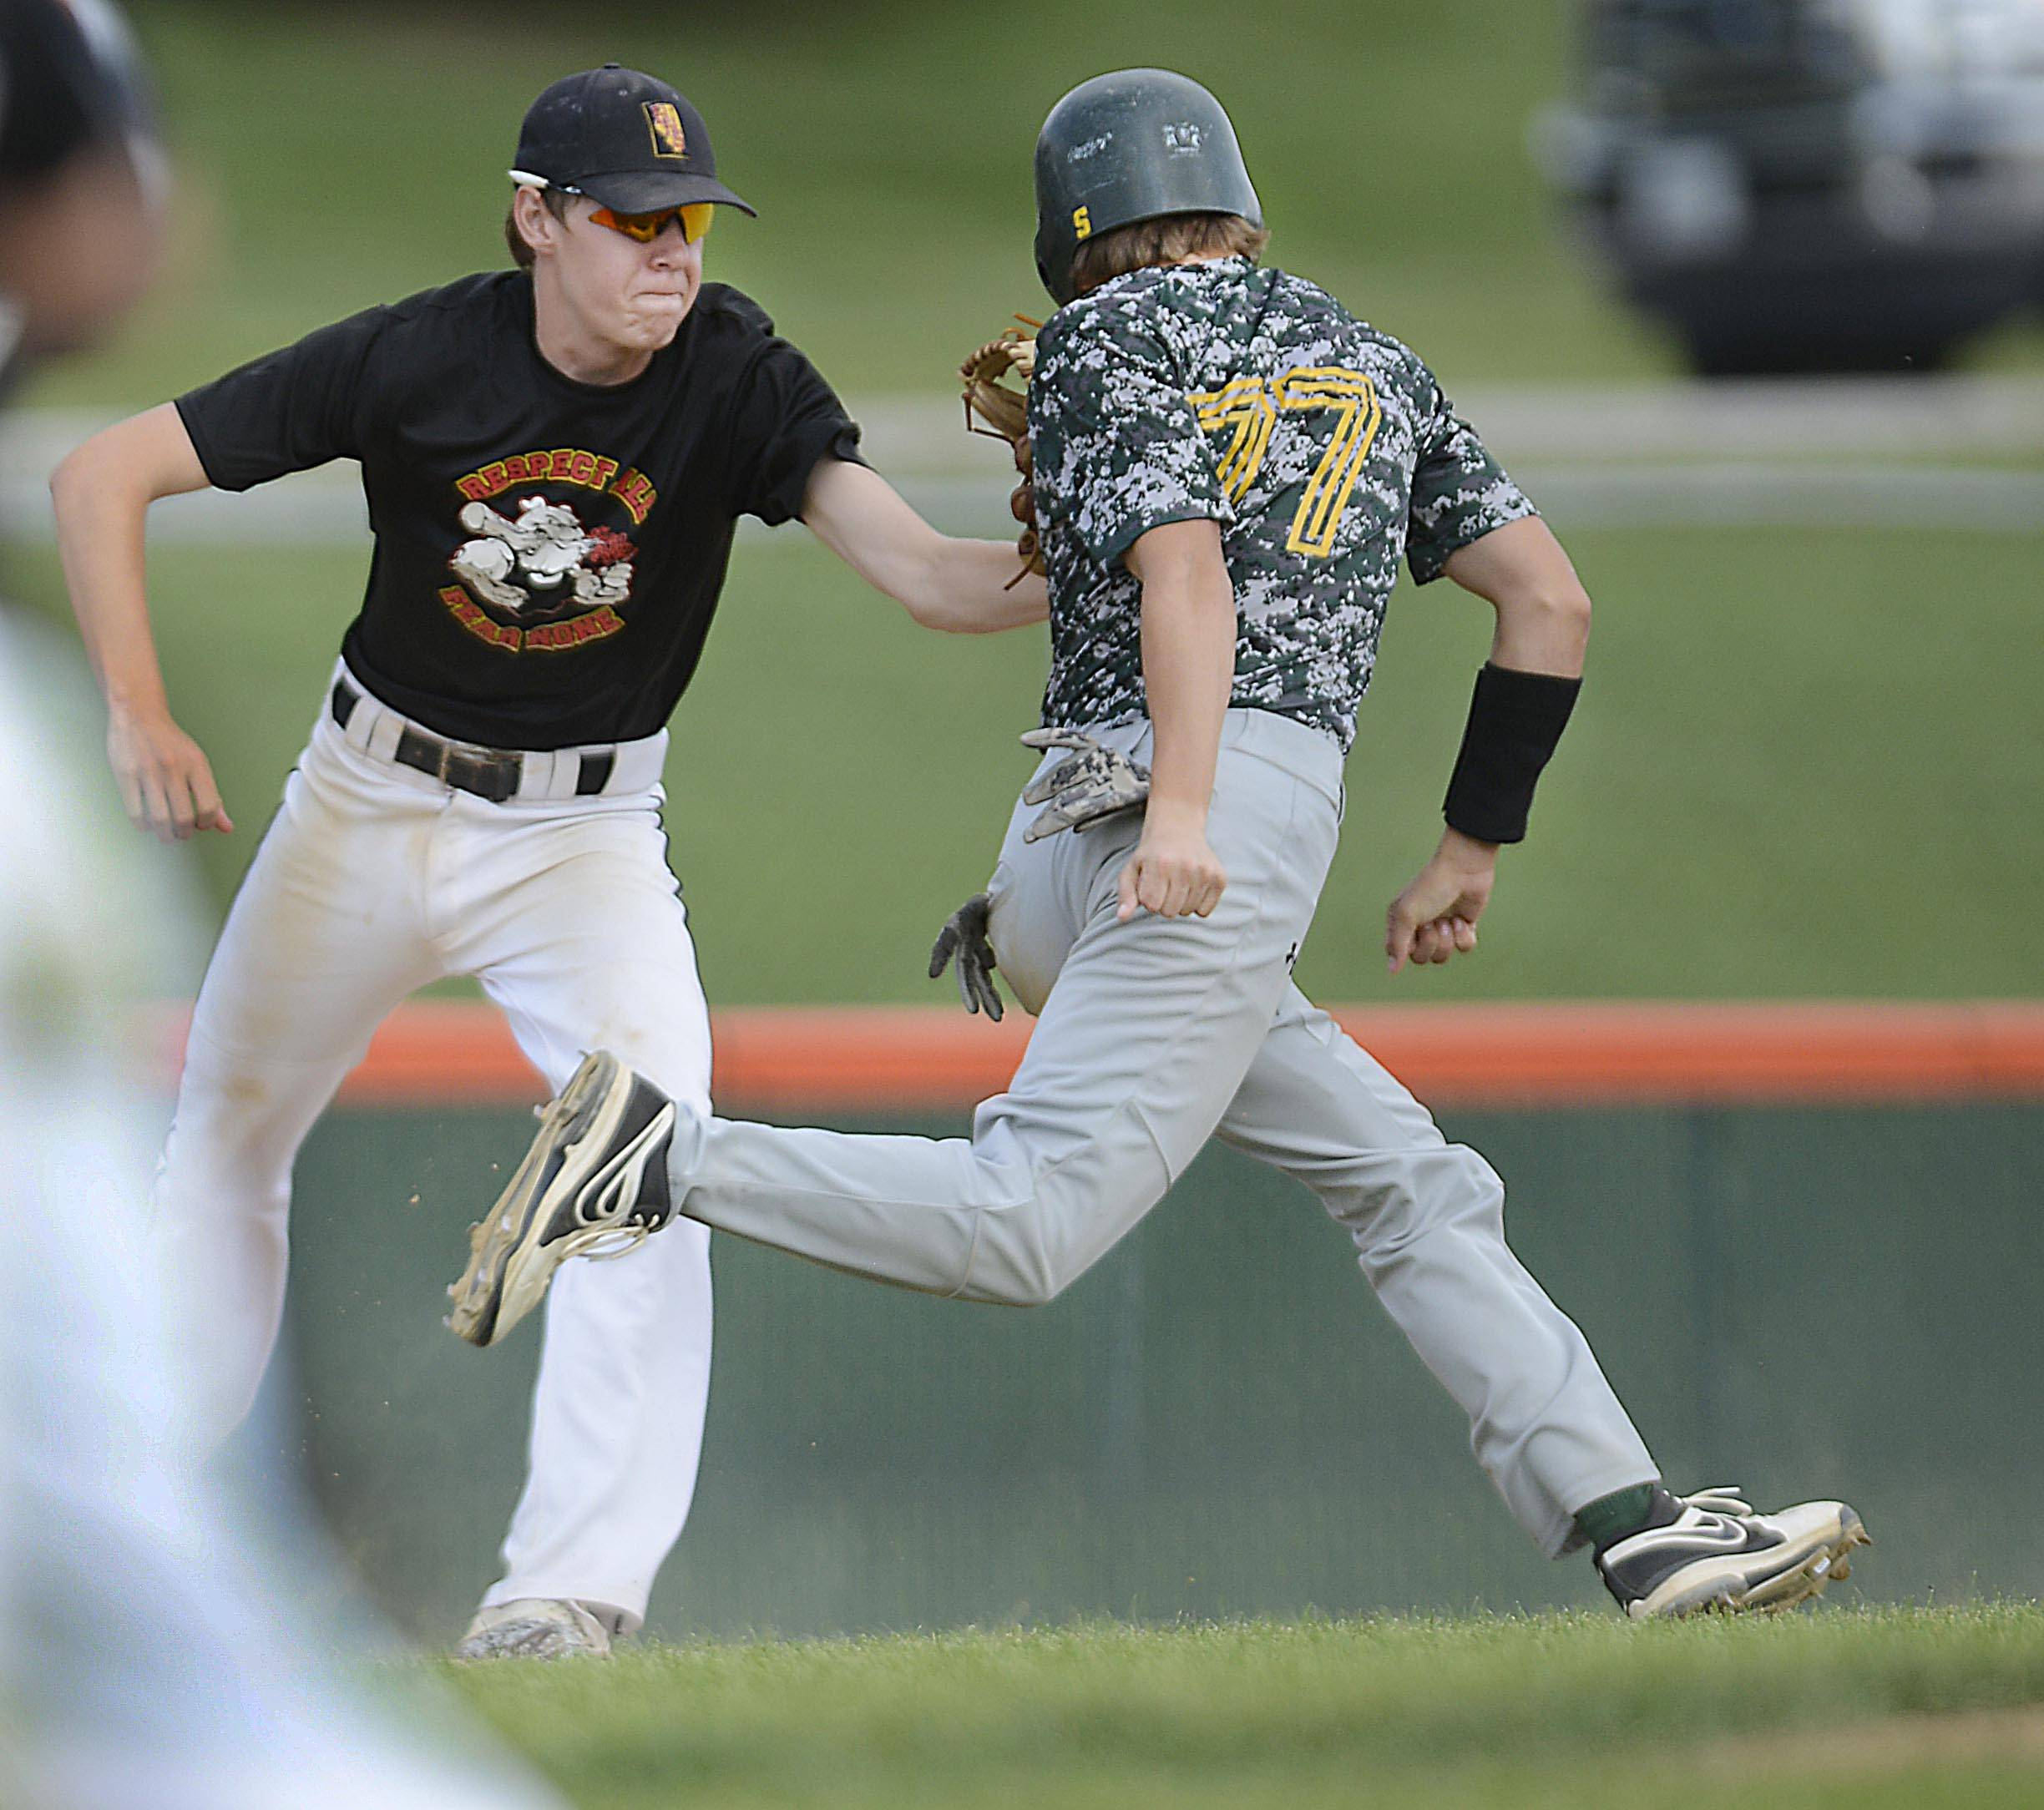 Batavia shortstop Sean Townsend tags out Chrystal Lake's Cam Geisser in a rundown between third base and home in the championship of the St. Charles East regional.